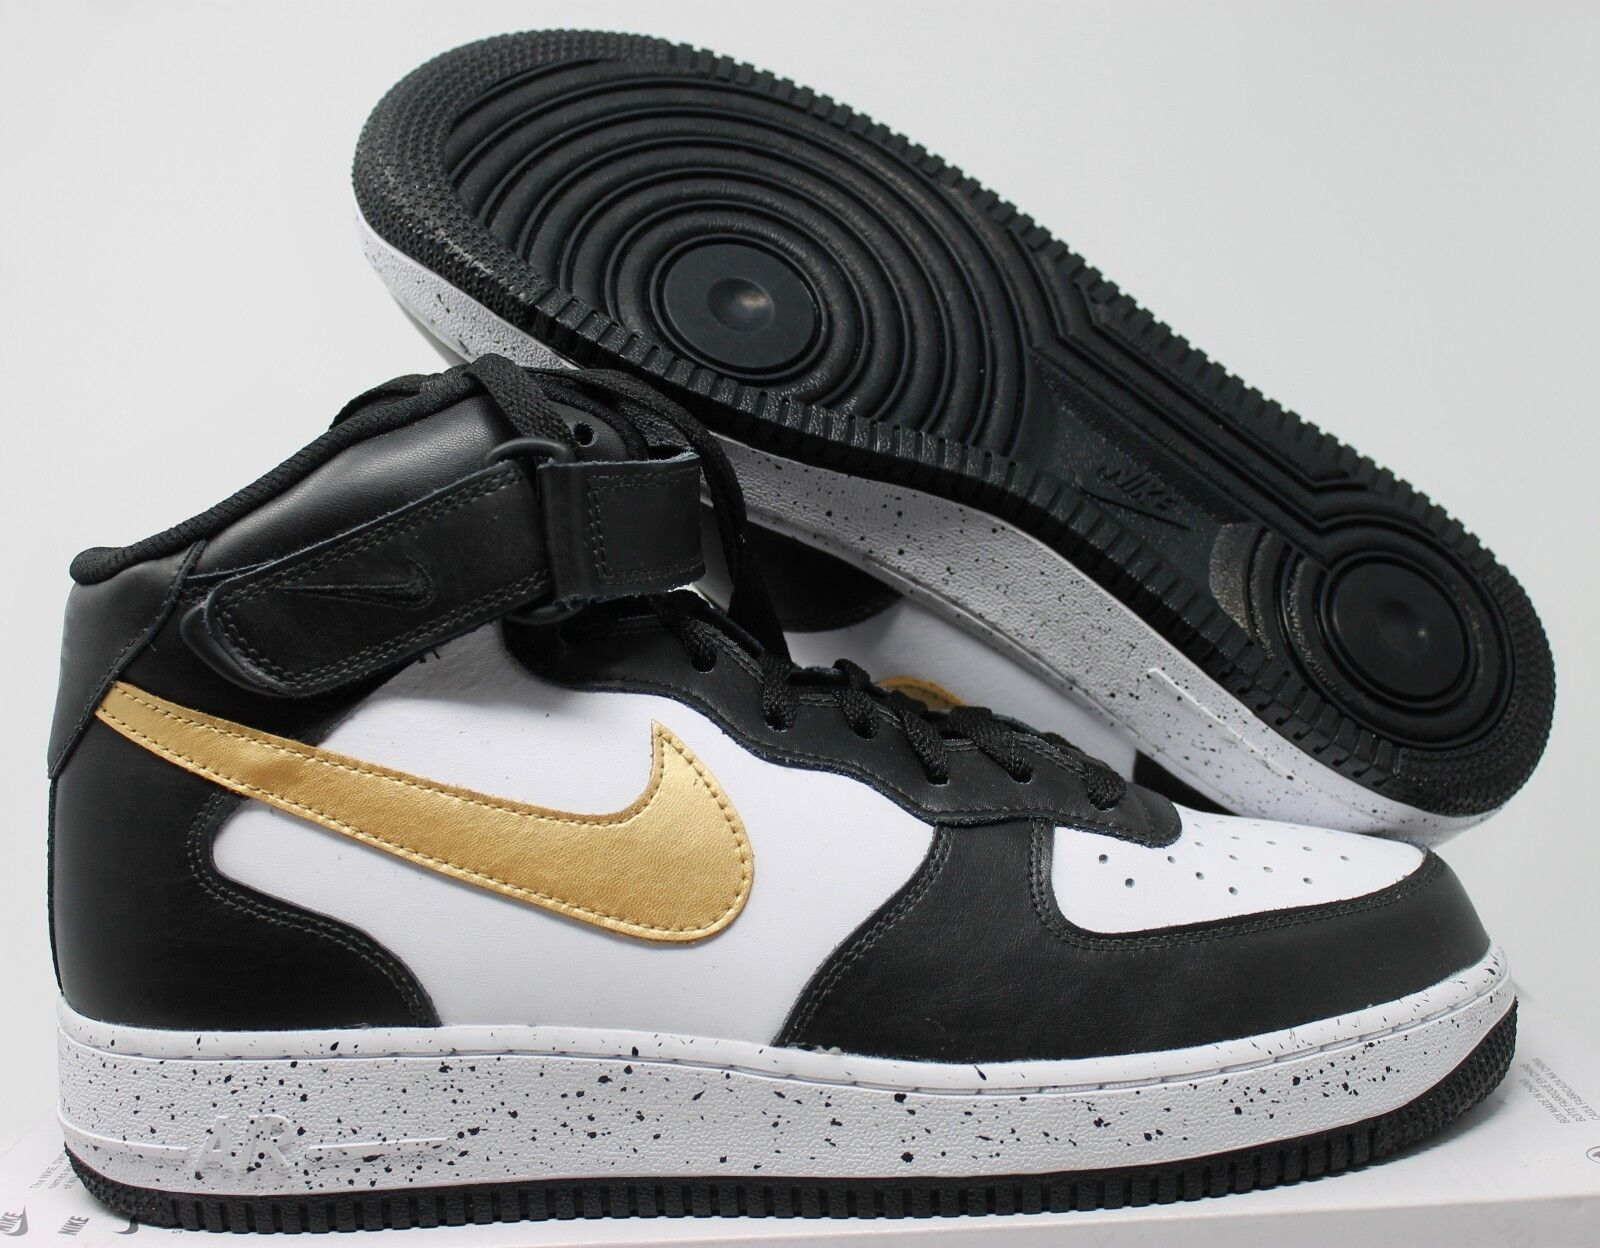 NIKE AIR FORCE 1 HIGH ID BLACK-WHITE-gold SZ 11.5 [AQ3776-991]